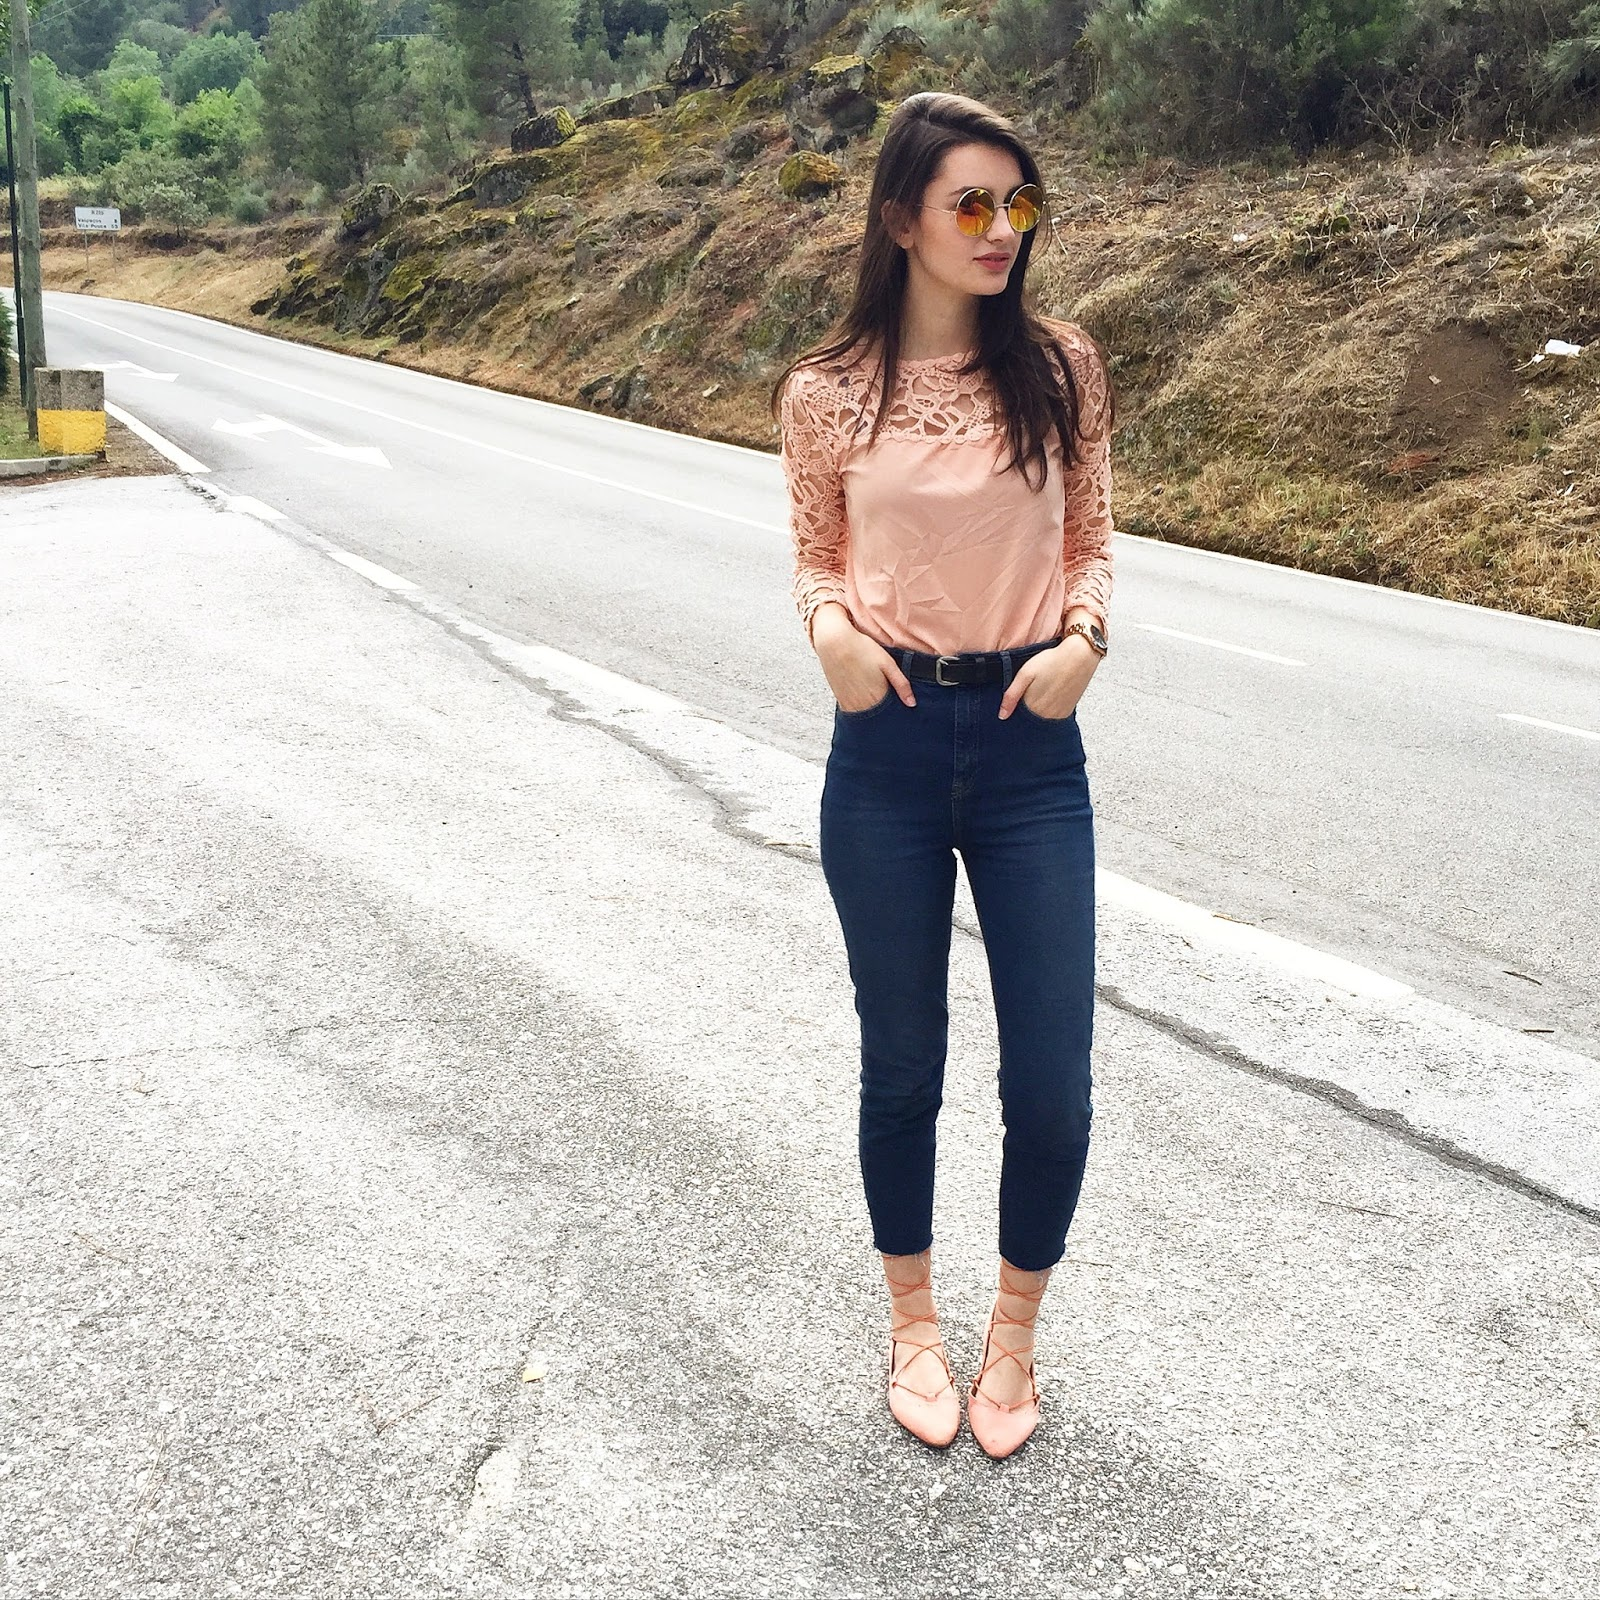 peexo-fashion-blogger-lace-top-topshop-binx-jeans-and-lace-up-shoes